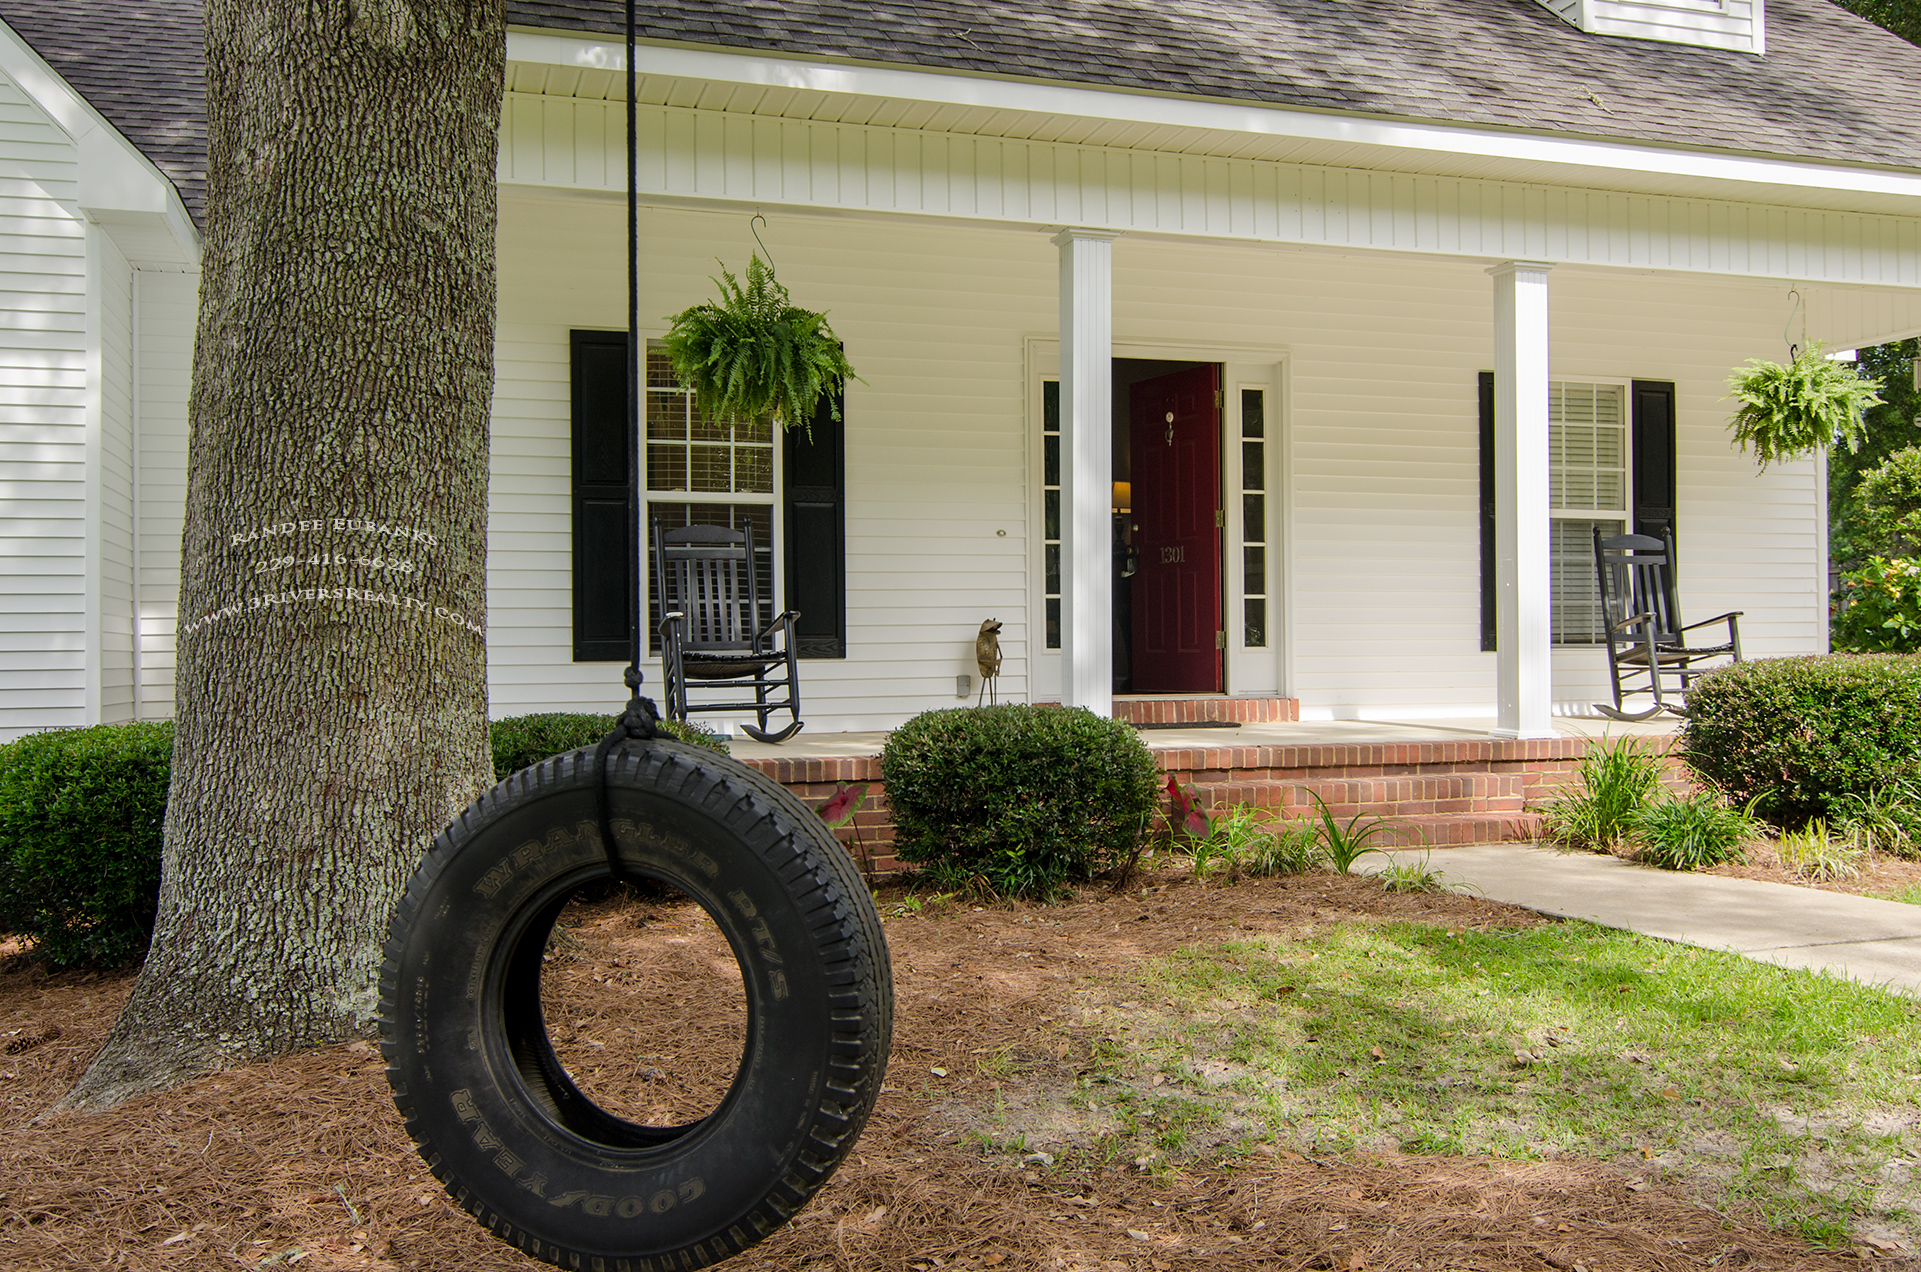 3riversrealty_bainbridge-georgia-home-for-sale_3-bed-2-bath_fireplace_three-rivers-realty_TaurusUSA_pool_back-porch_streetview_tire-swing.jpg